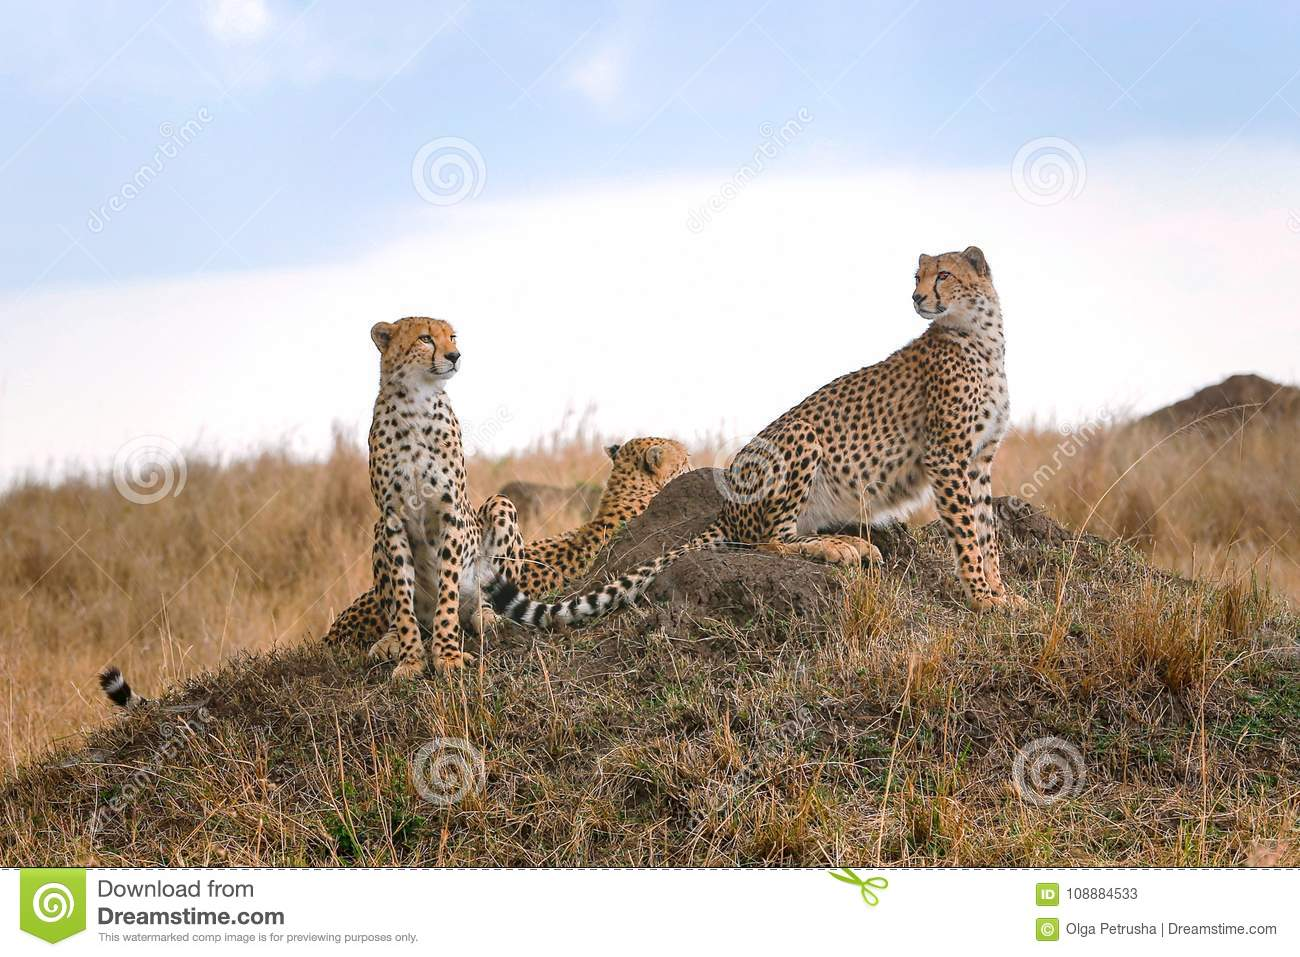 Three cheetahs in the savannah